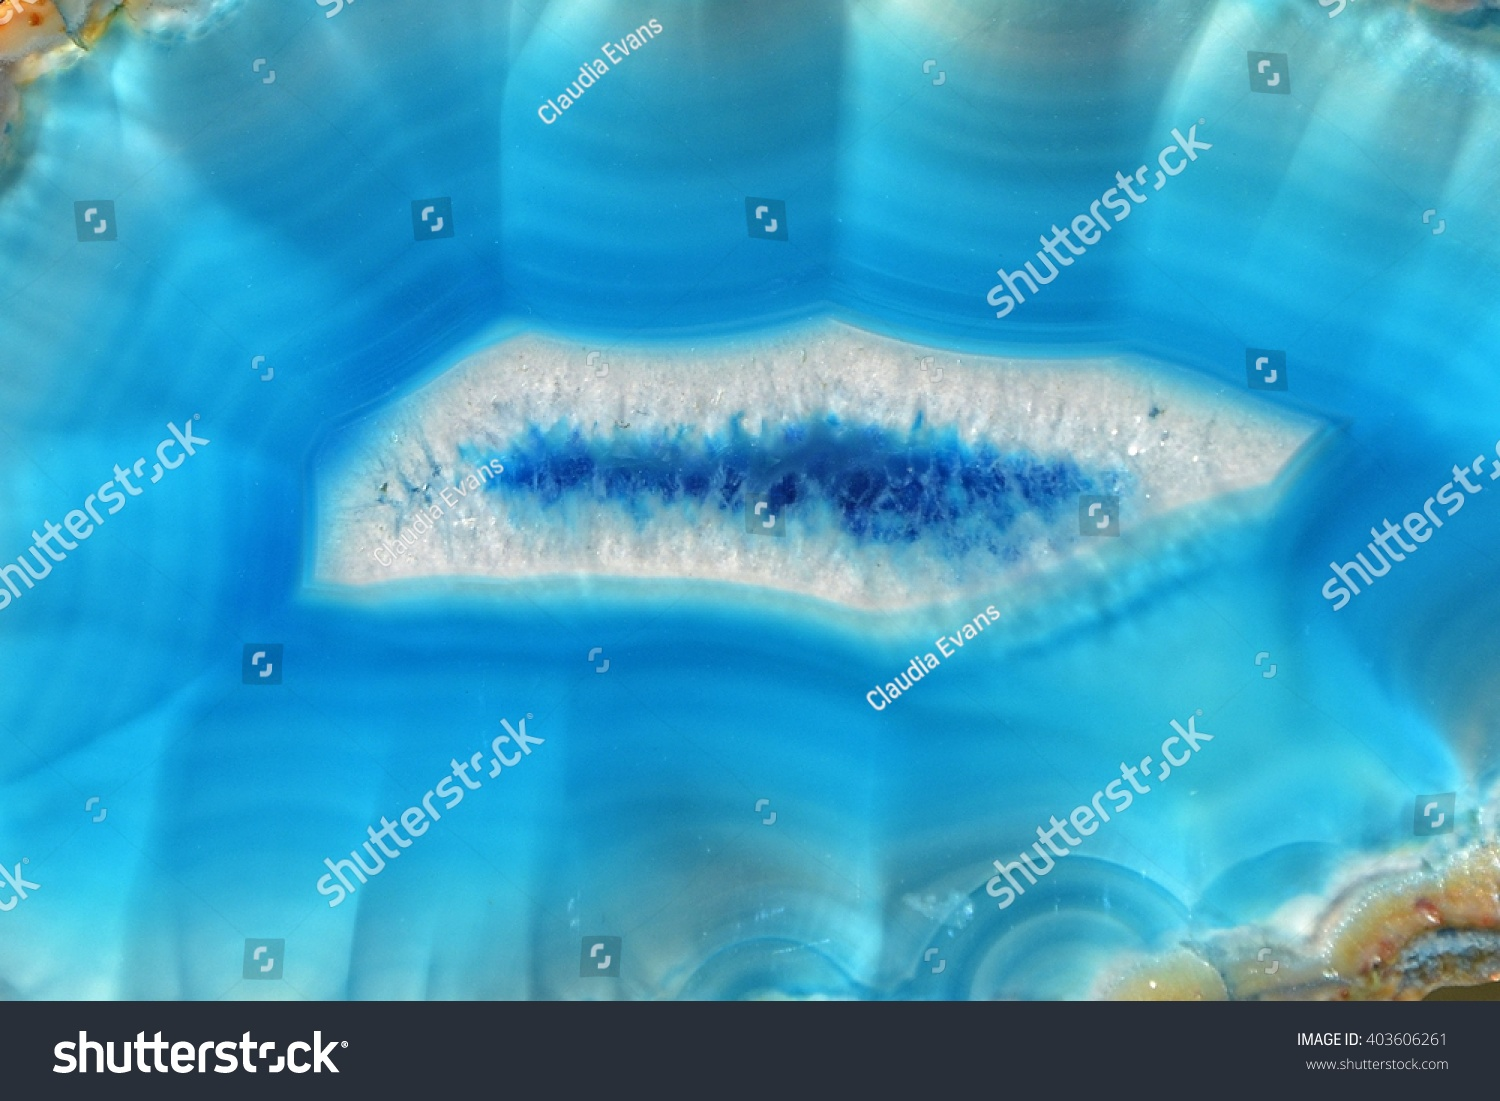 Light Blue Agate Slice Detail Stock Photo Edit Now 403606261 The Wet Brush Gemstone Teal In